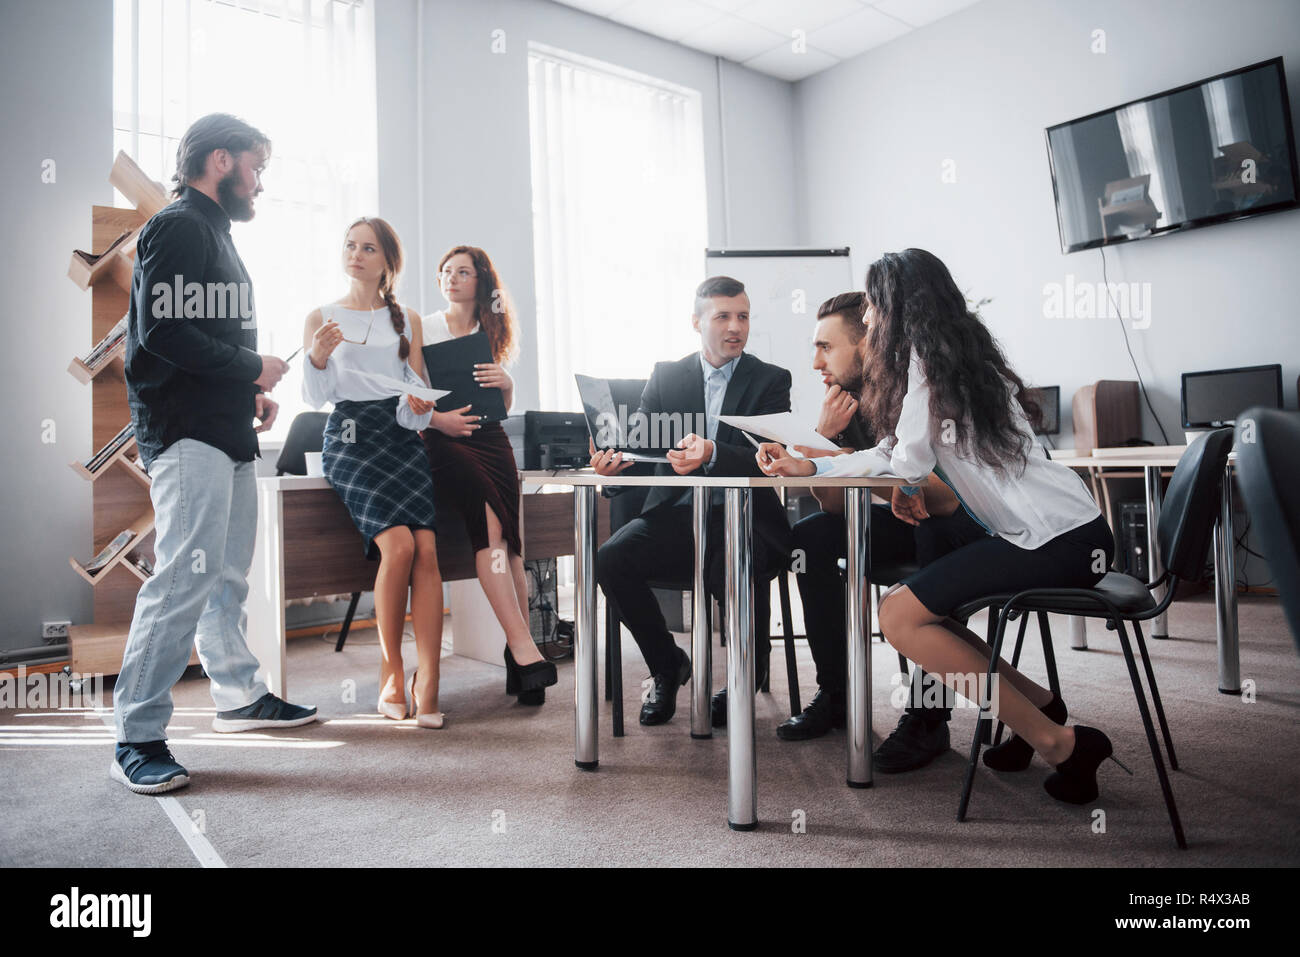 Group of young business people working and communicating together in creative office Stock Photo